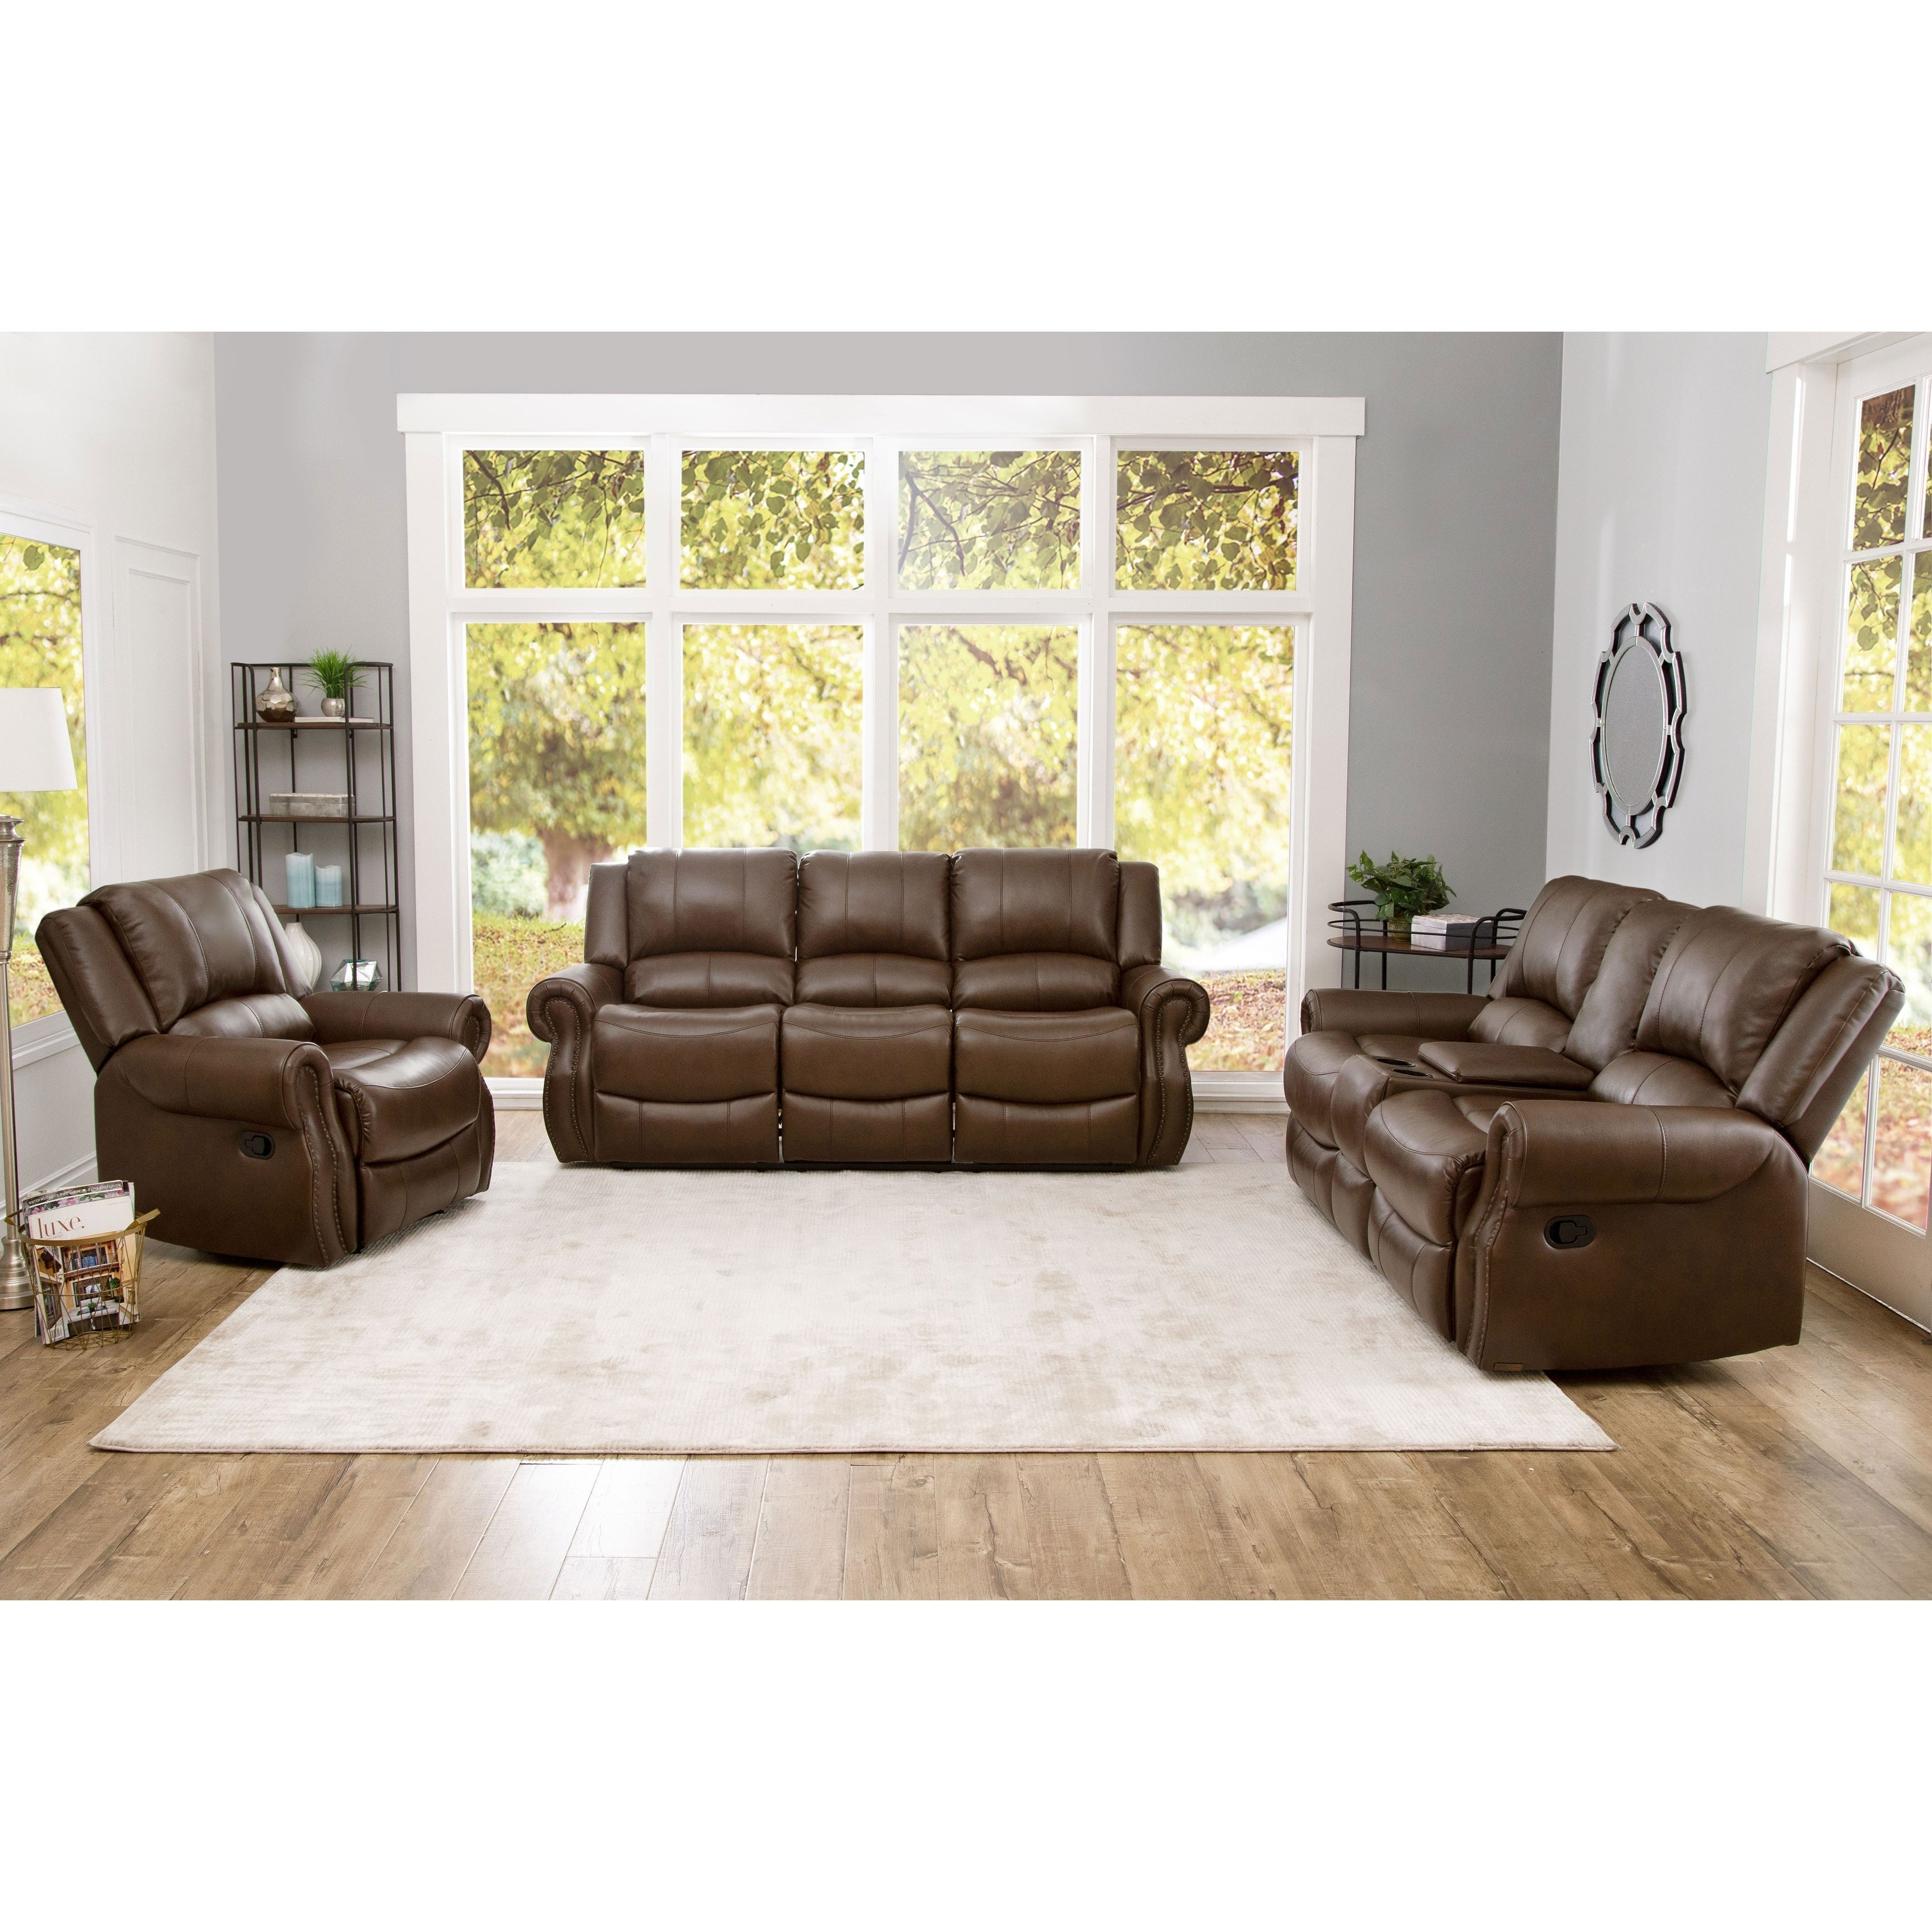 Shop Abson Calabasas Mesa Brown Leather 3 Piece Reclining Living intended for 3 Piece Leather Living Room Set